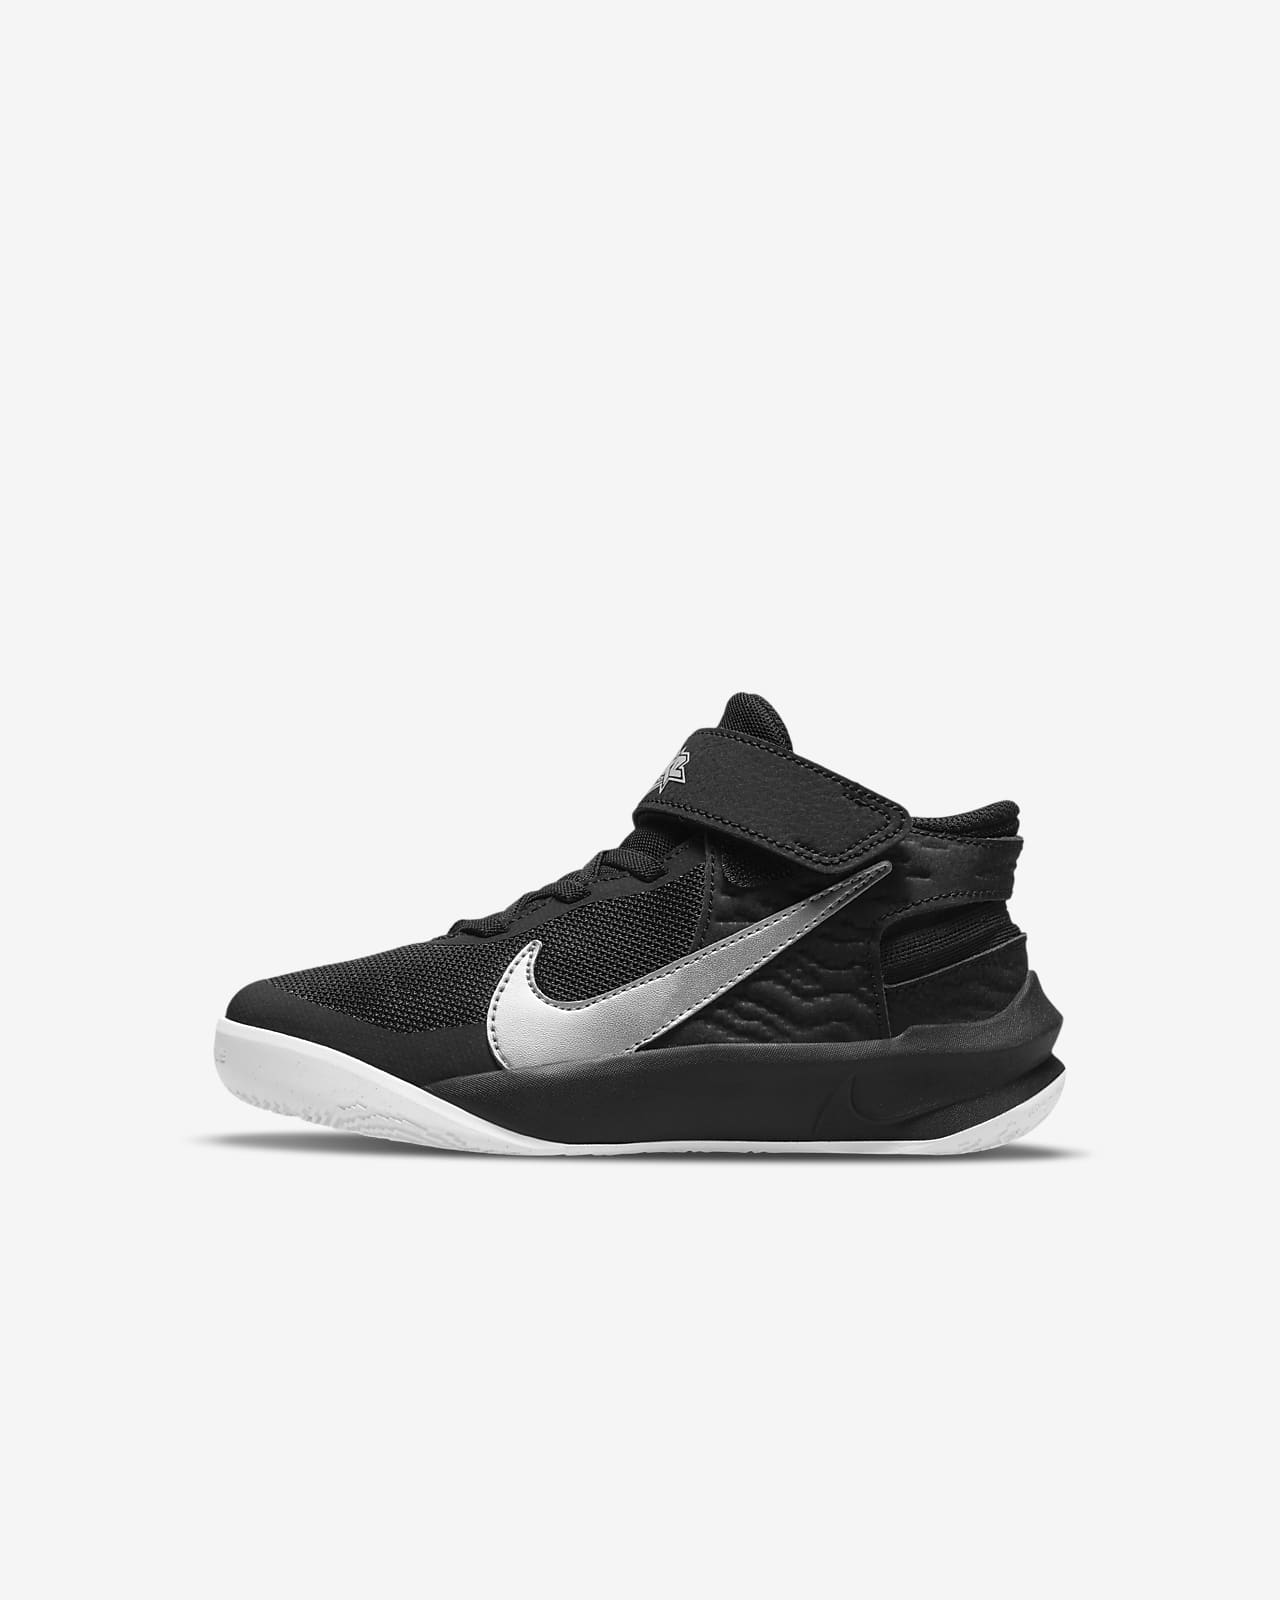 Nike Team Hustle D 10 FlyEase Younger Kids' Shoes